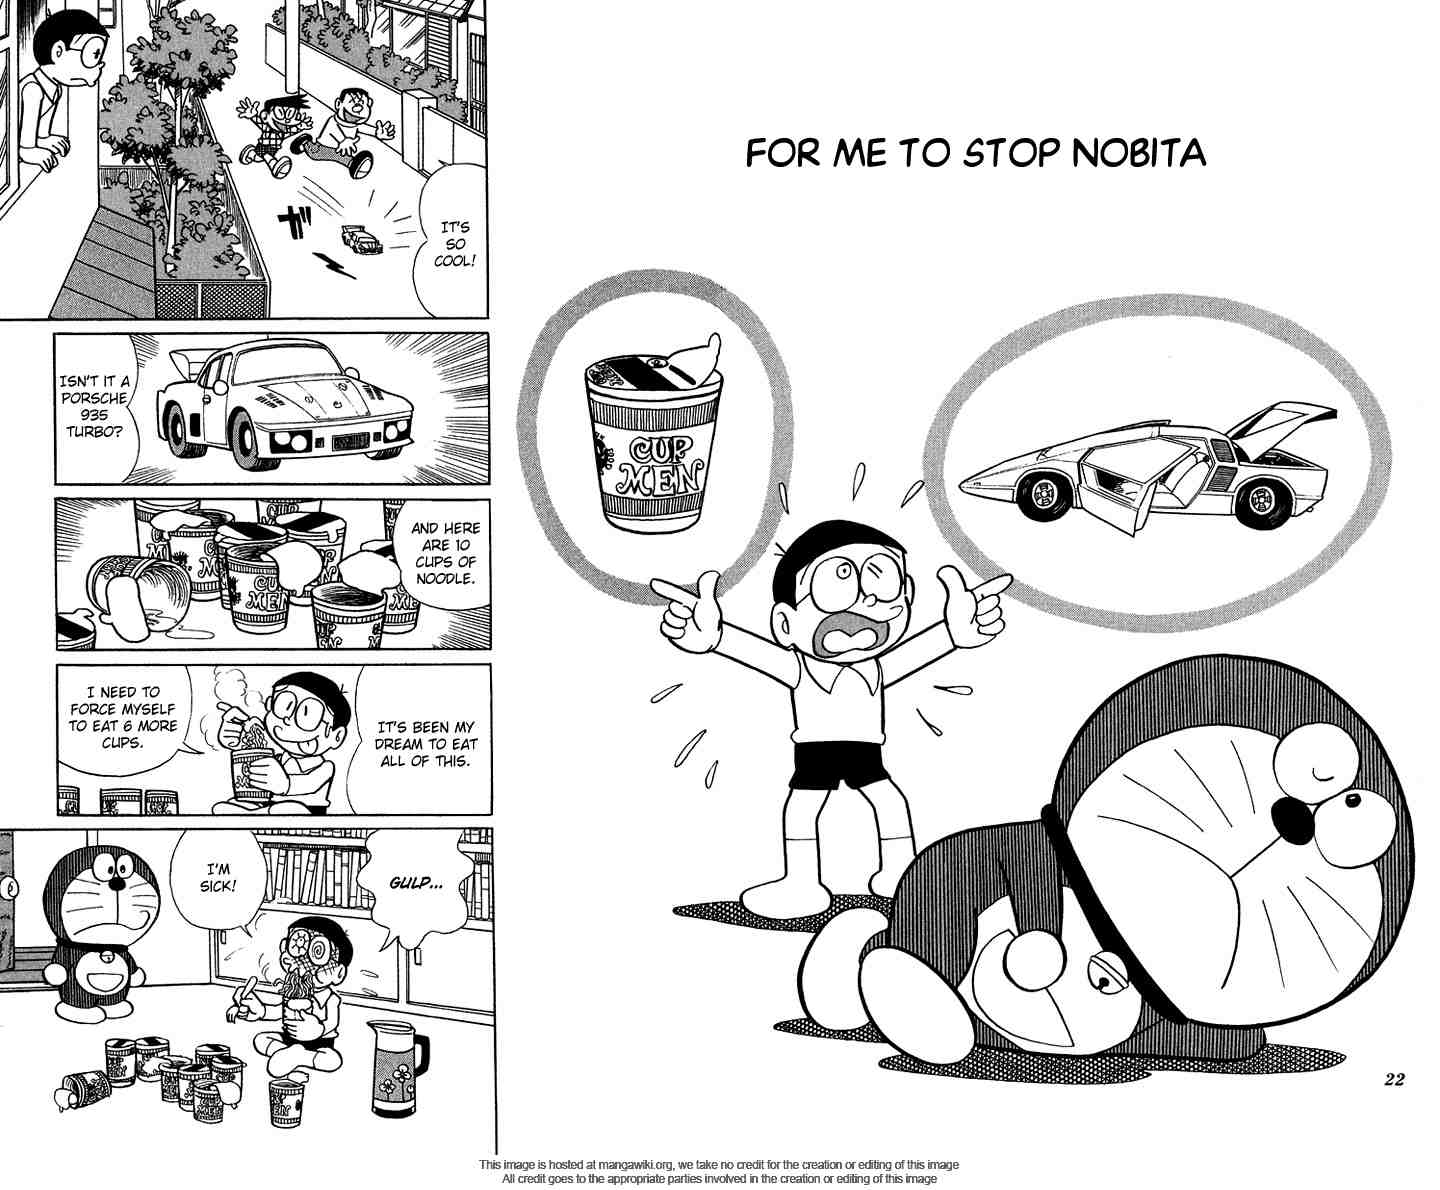 Doraemon+ (Plus) Volume 1, Chapter 3: For Me To Stop